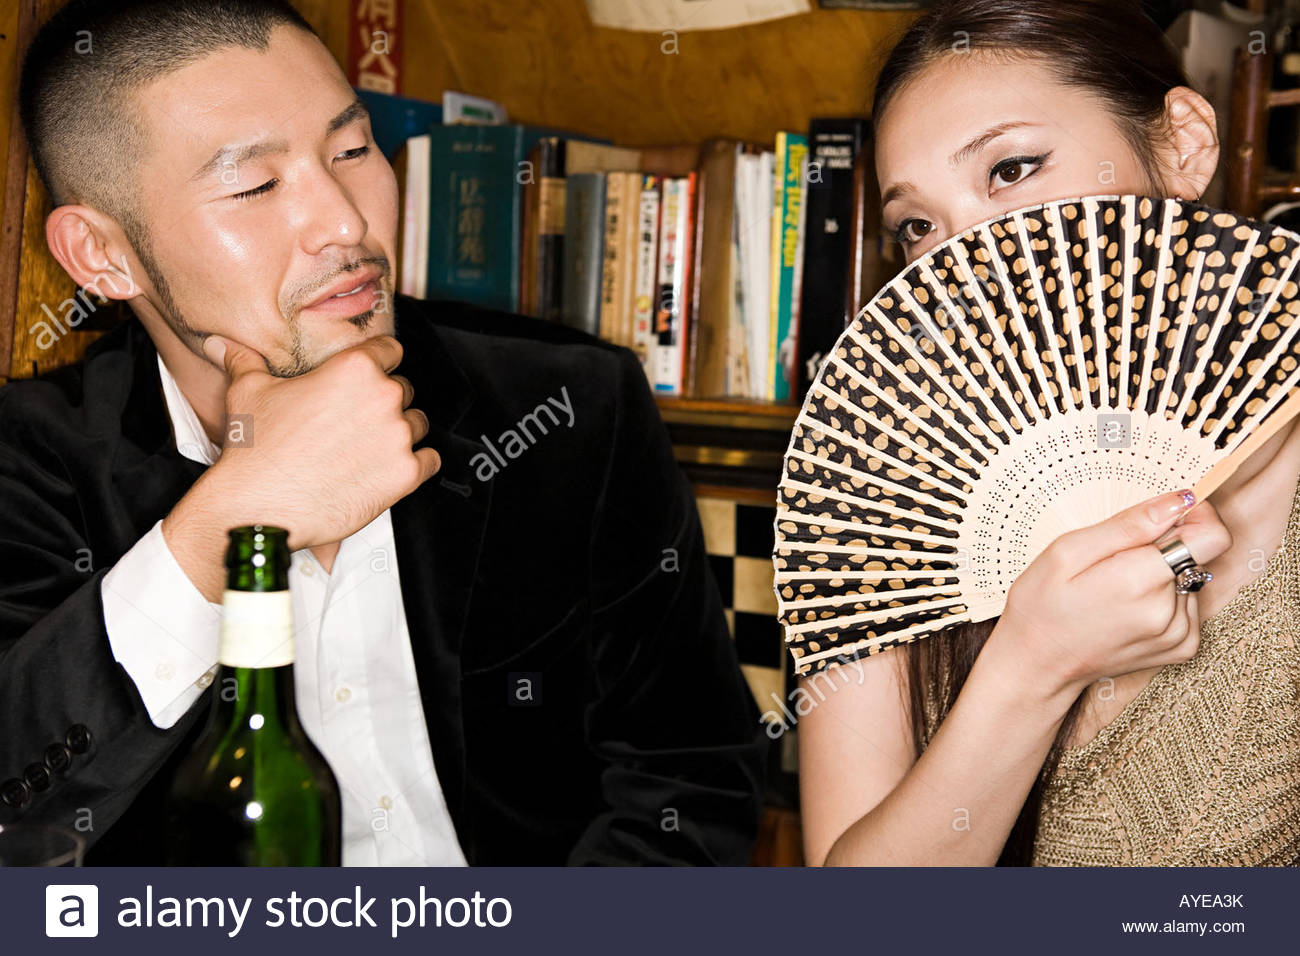 Woman covering her face with a hand fan - Stock Image